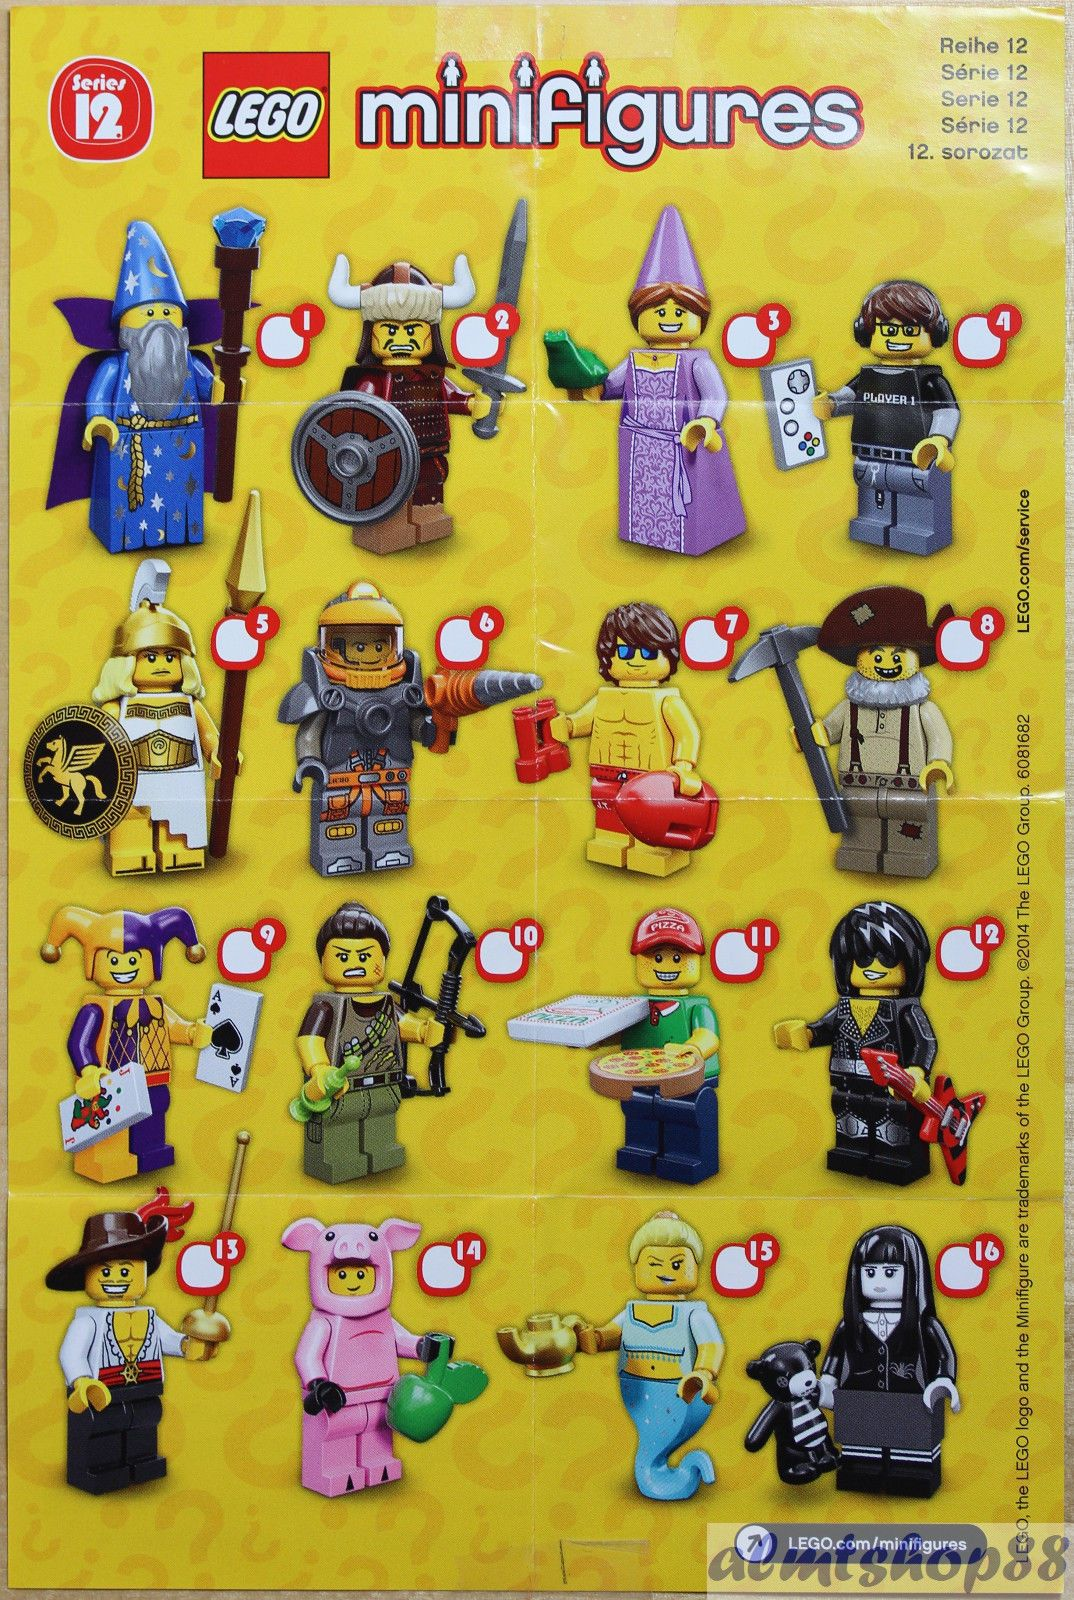 LEGO SERIES MINIFIGURE PAMPHLET INSTRUCTIONS 1 2 3 4 5 6 7 8 9 10 11 12 13 MORE!